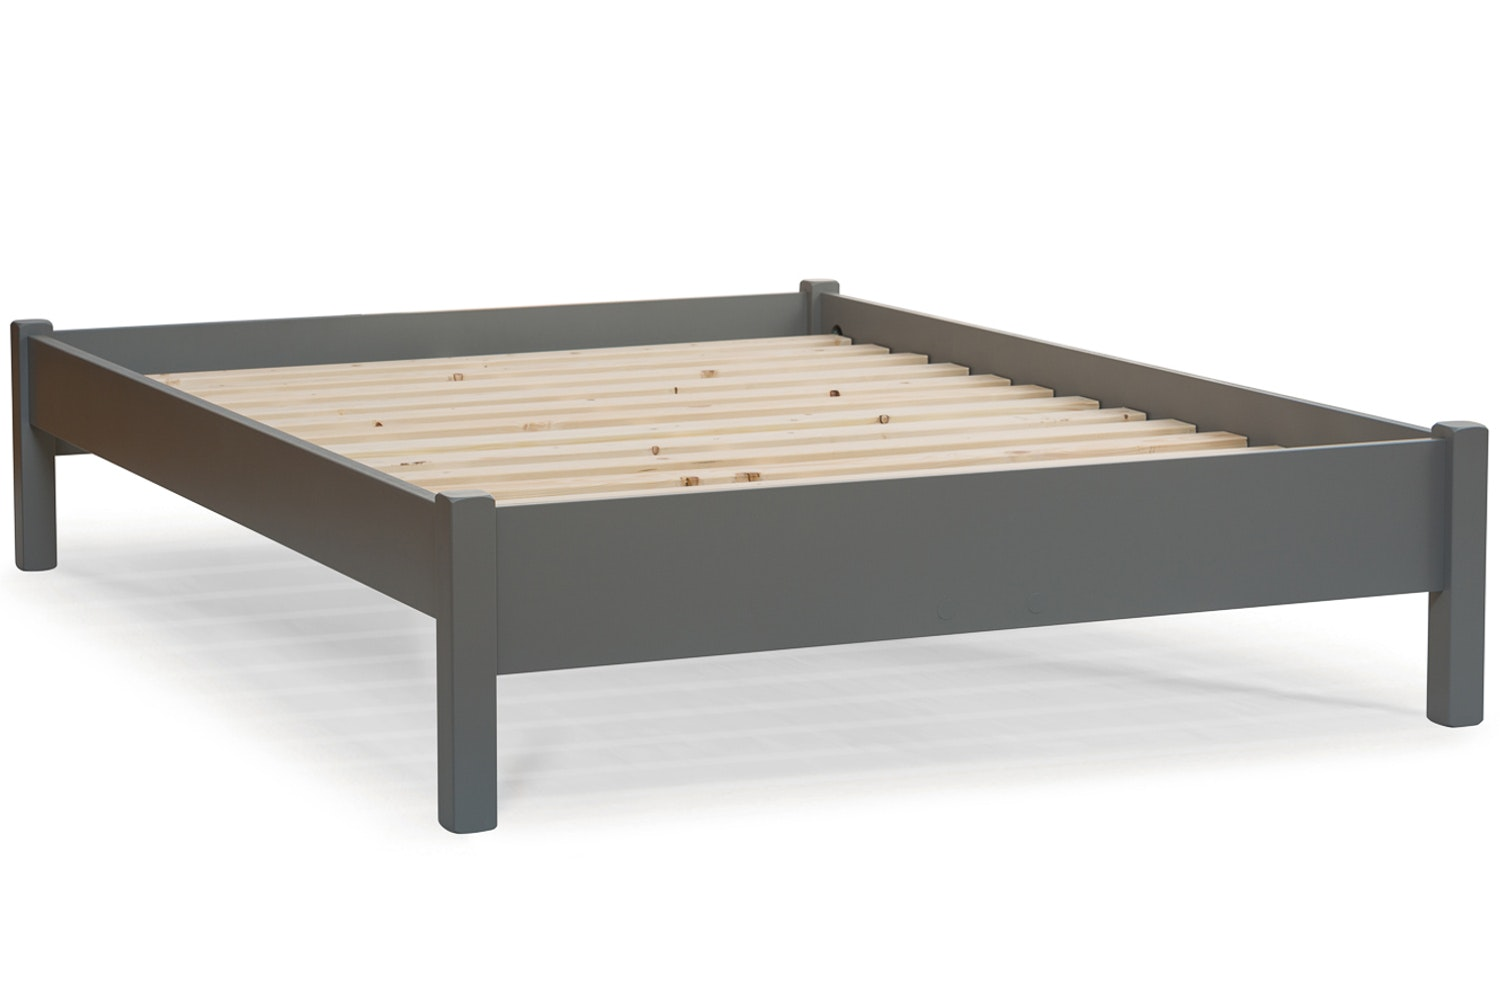 Emily Low Low Bed Frame | 4ft6 | Dove Grey